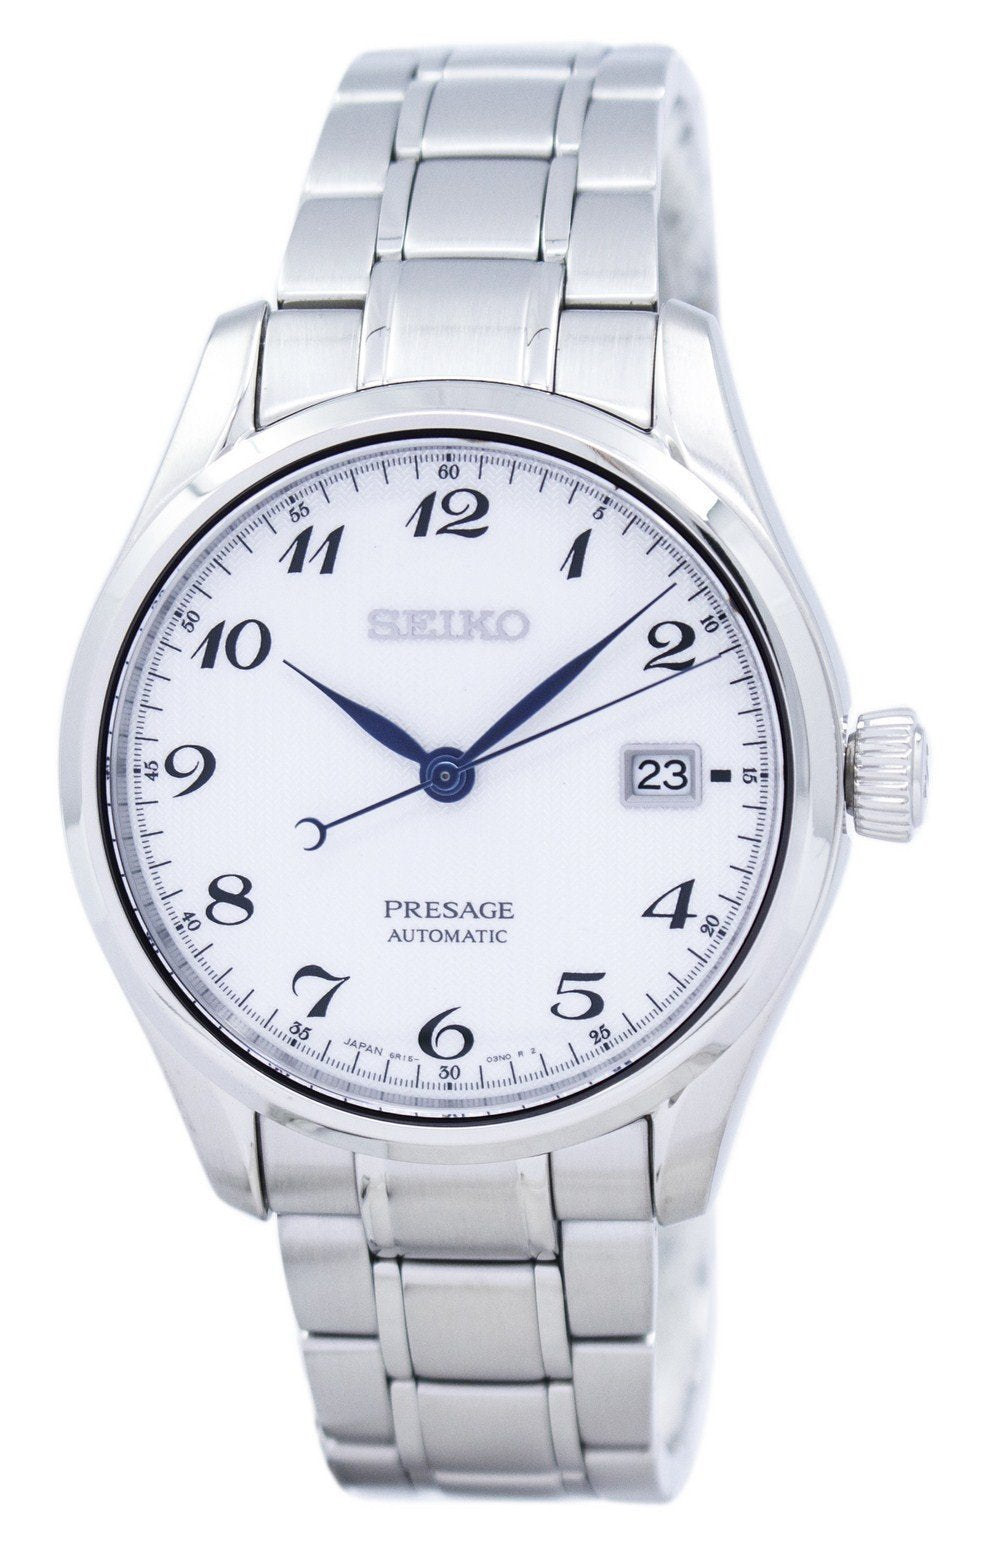 Seiko Presage Automatic Japan Made SPB063 SPB063J1 SPB063J Men's Watch